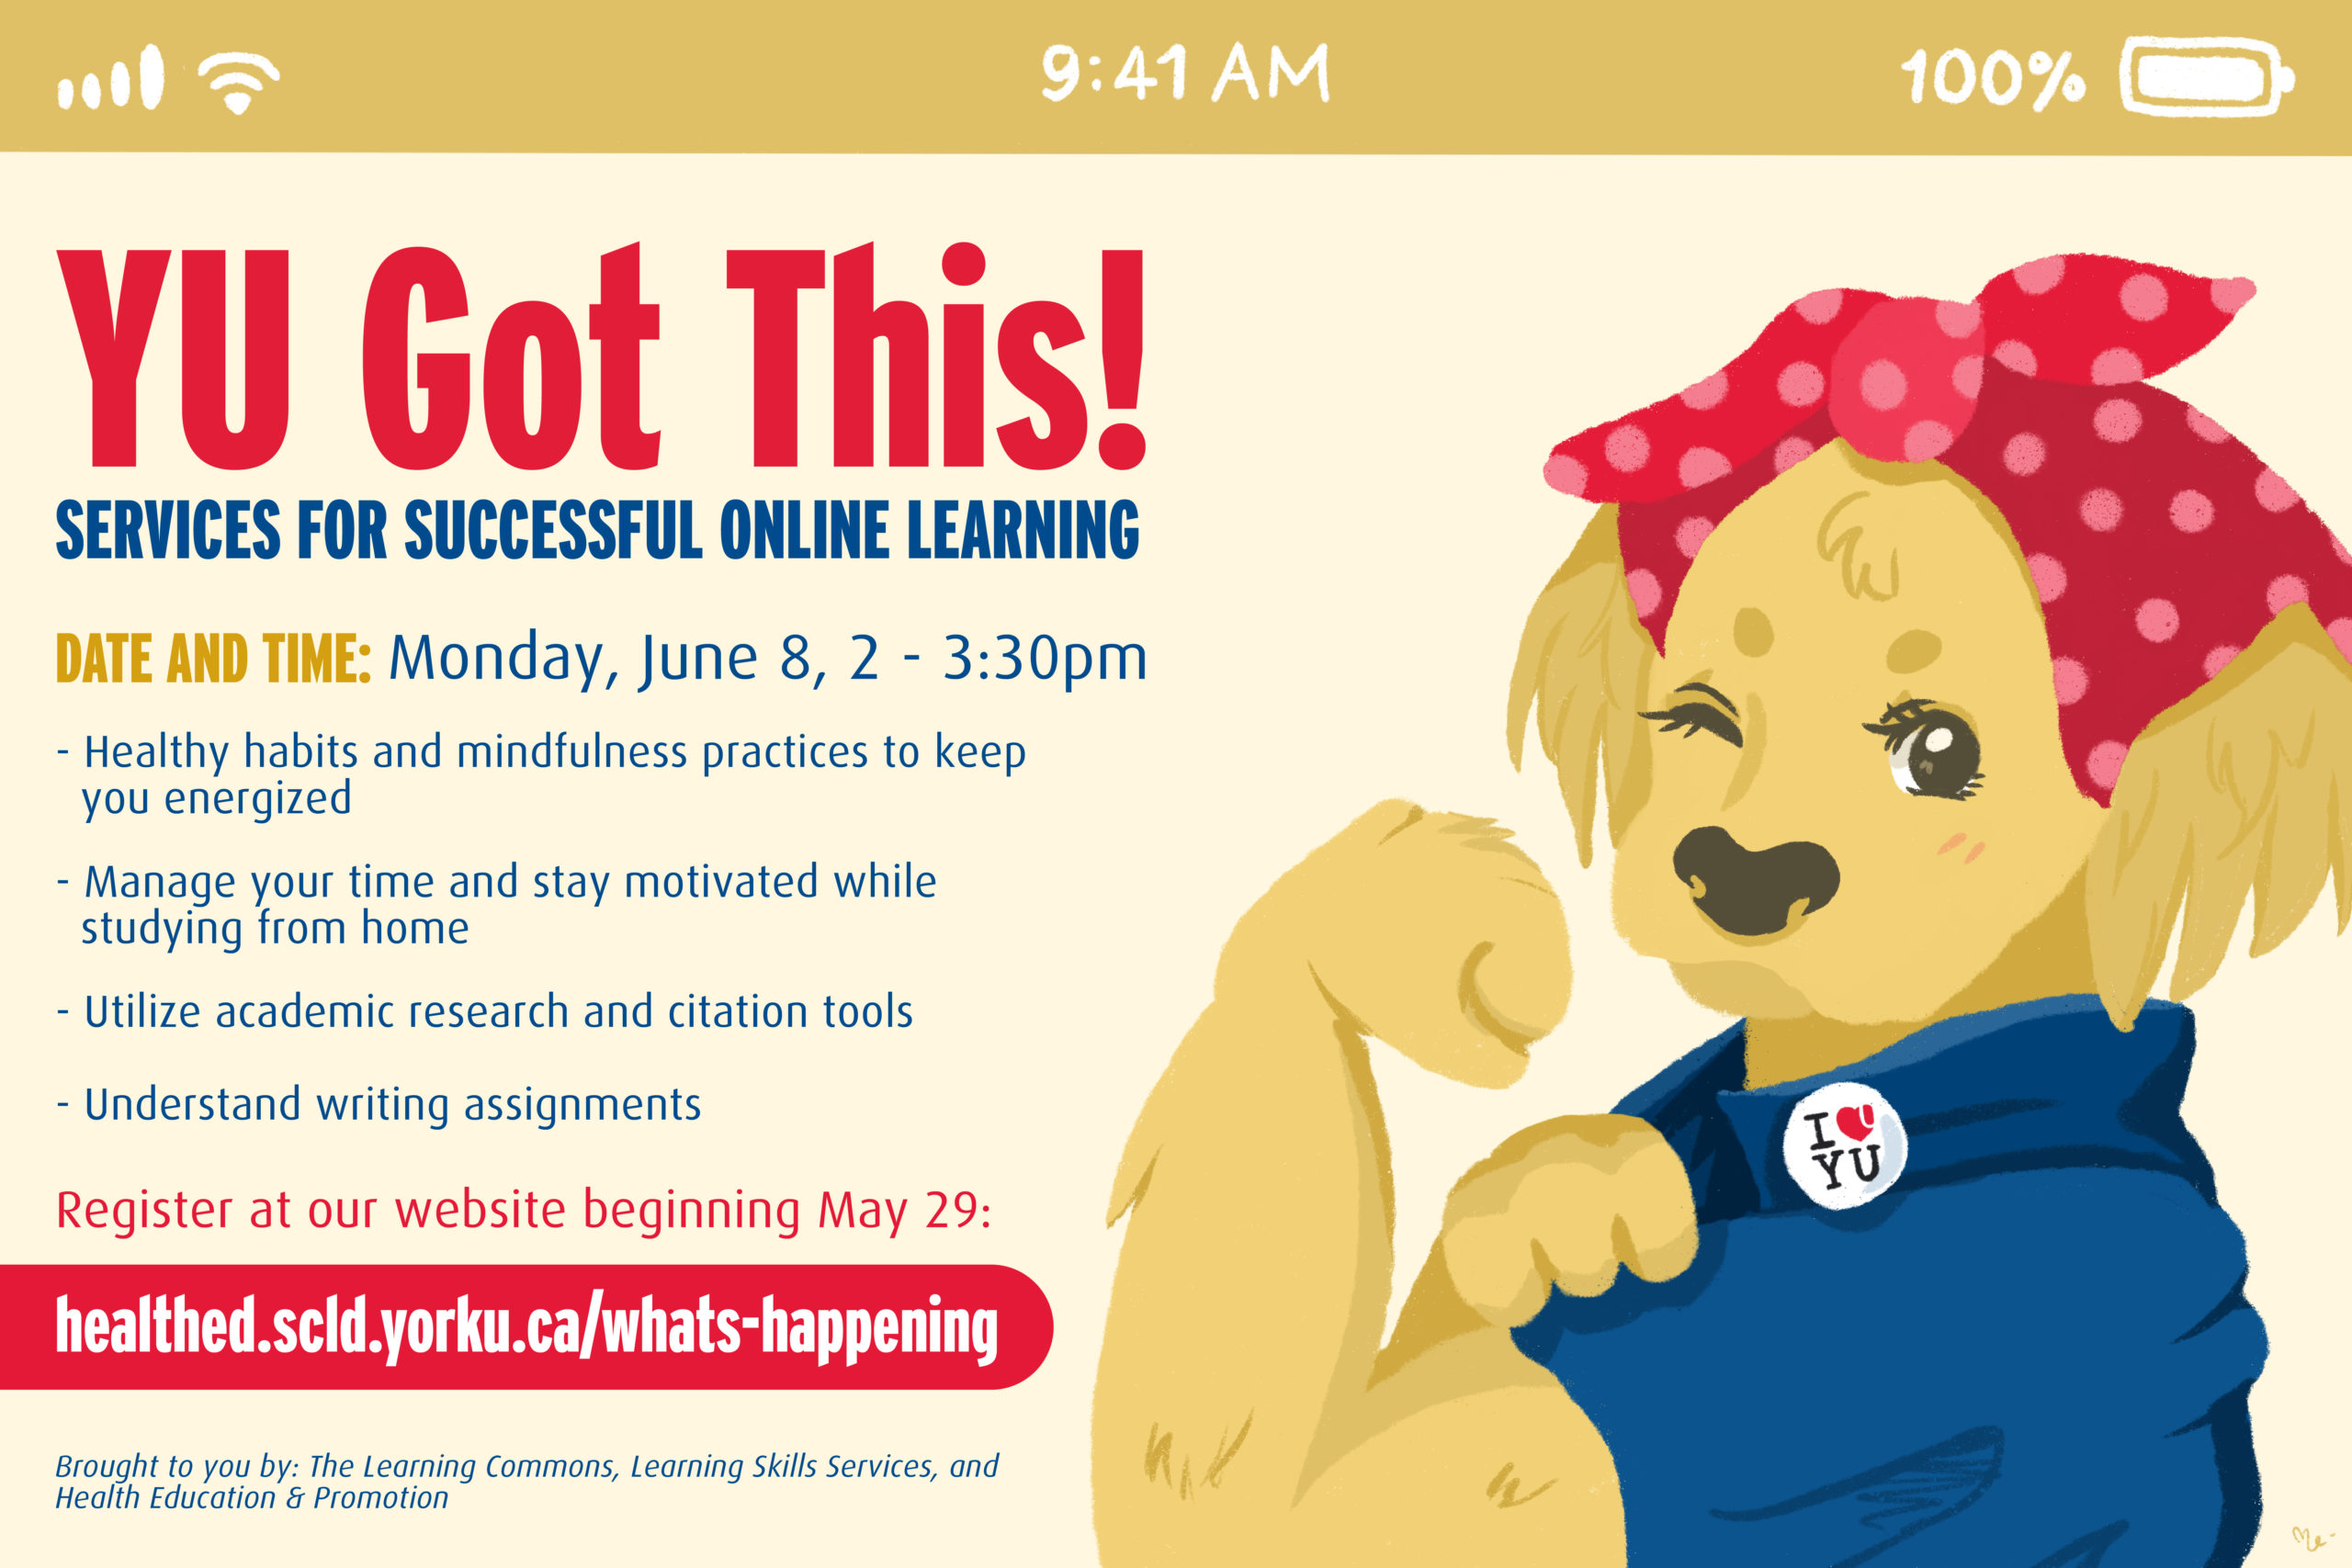 YU Got This: Services for Successful Online Learning @ https://yorku.zoom.us/meeting/register/tJcsd-2qqDsuHtIjGErarmJiUXS0nfn9L69e